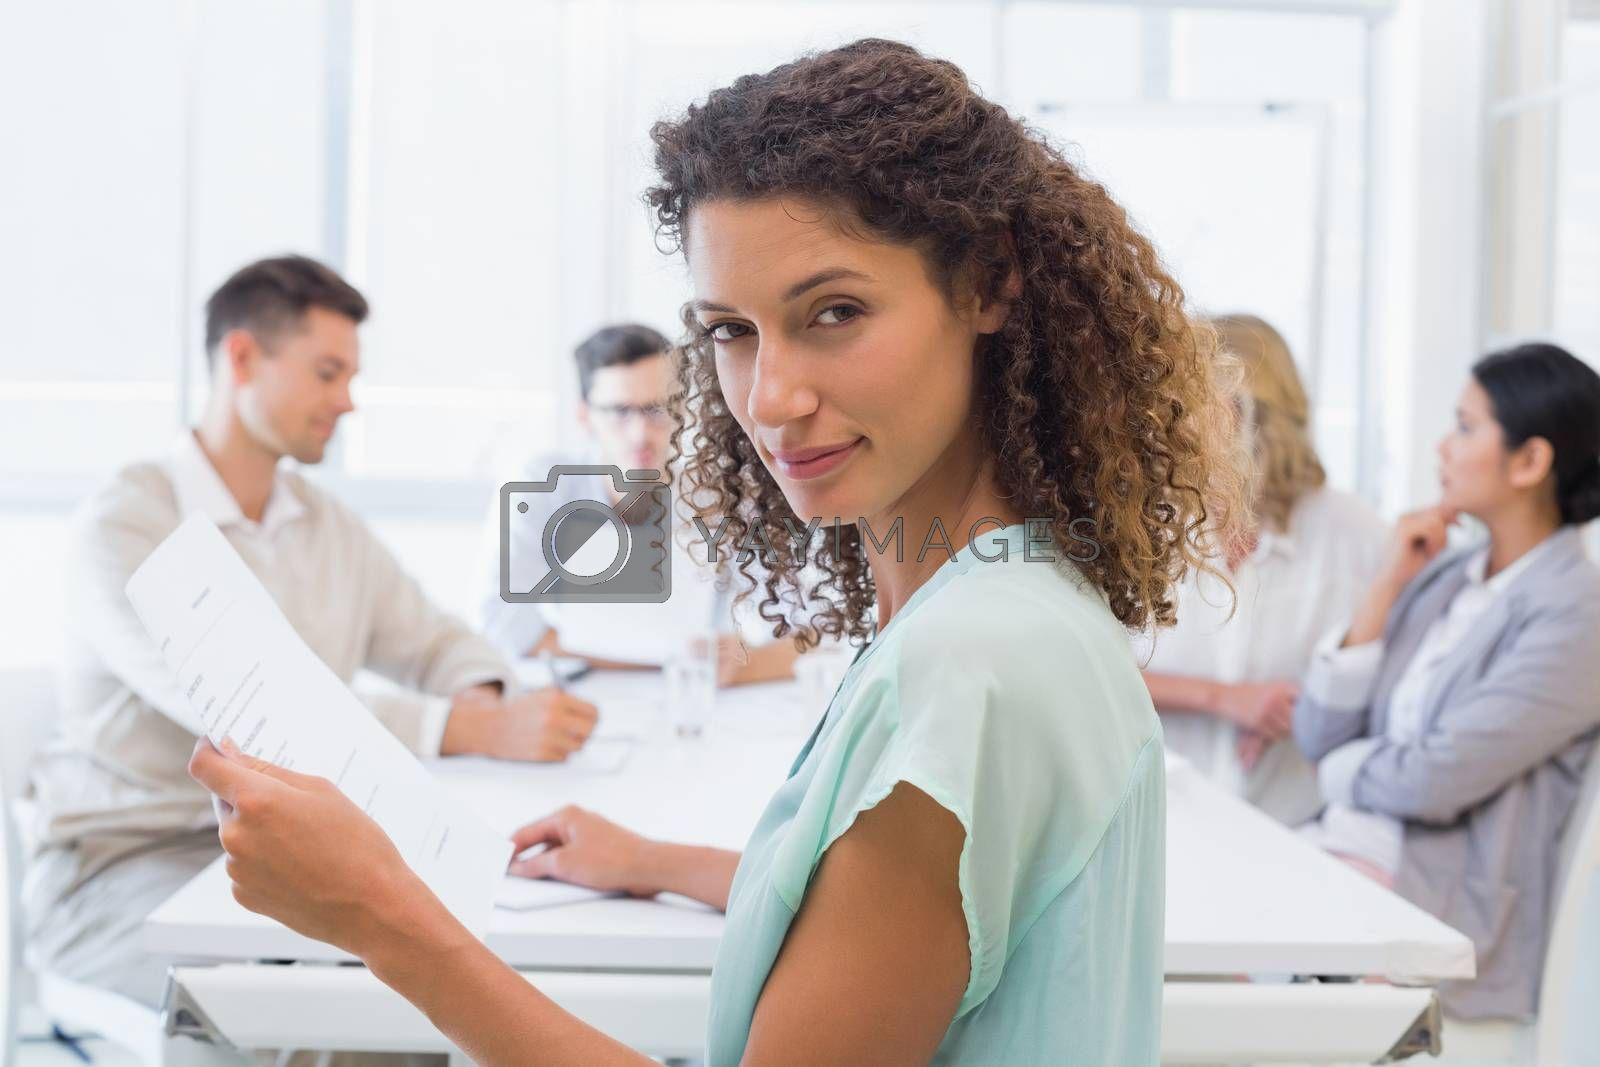 Royalty free image of Casual businesswoman looking at camera during meeting by Wavebreakmedia